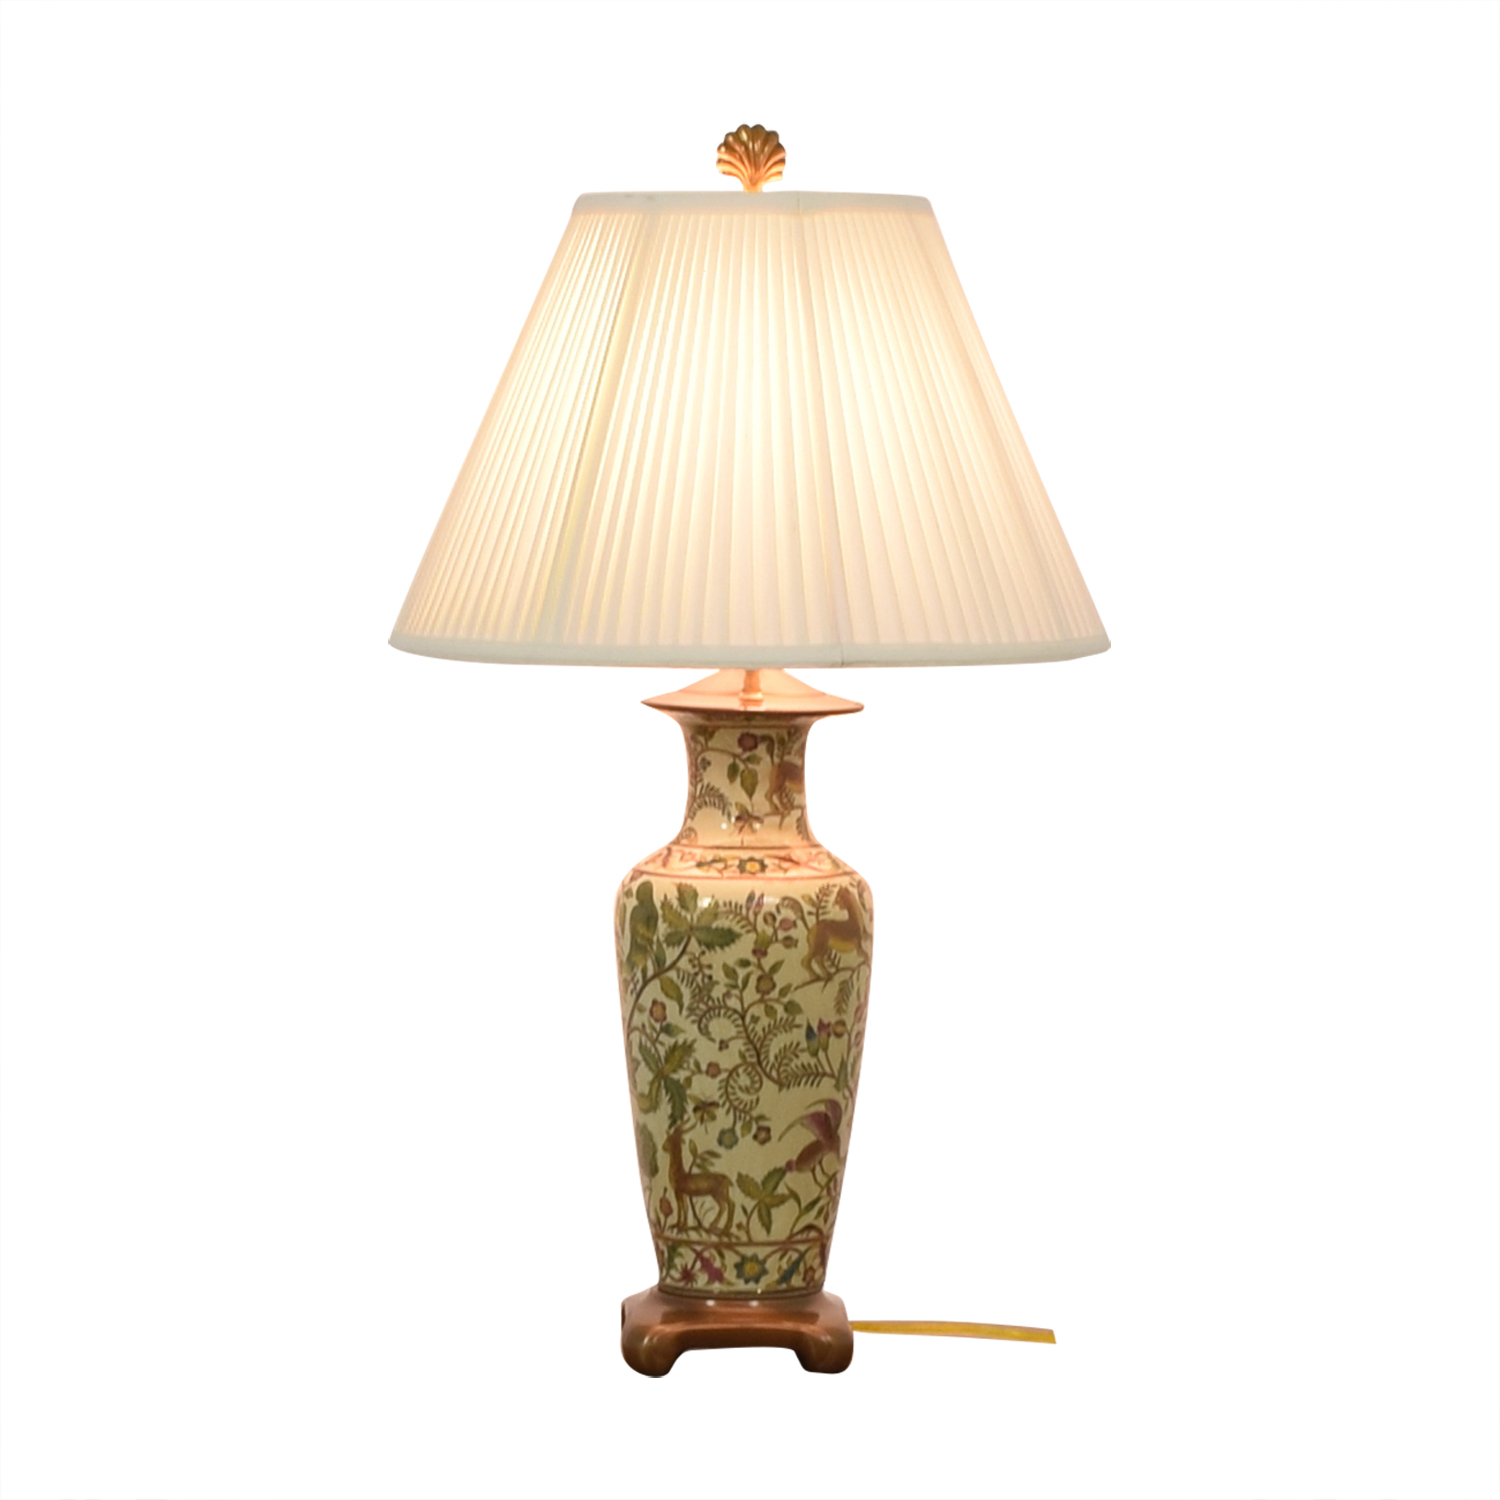 Painted Ceramic Table Lamp dimensions